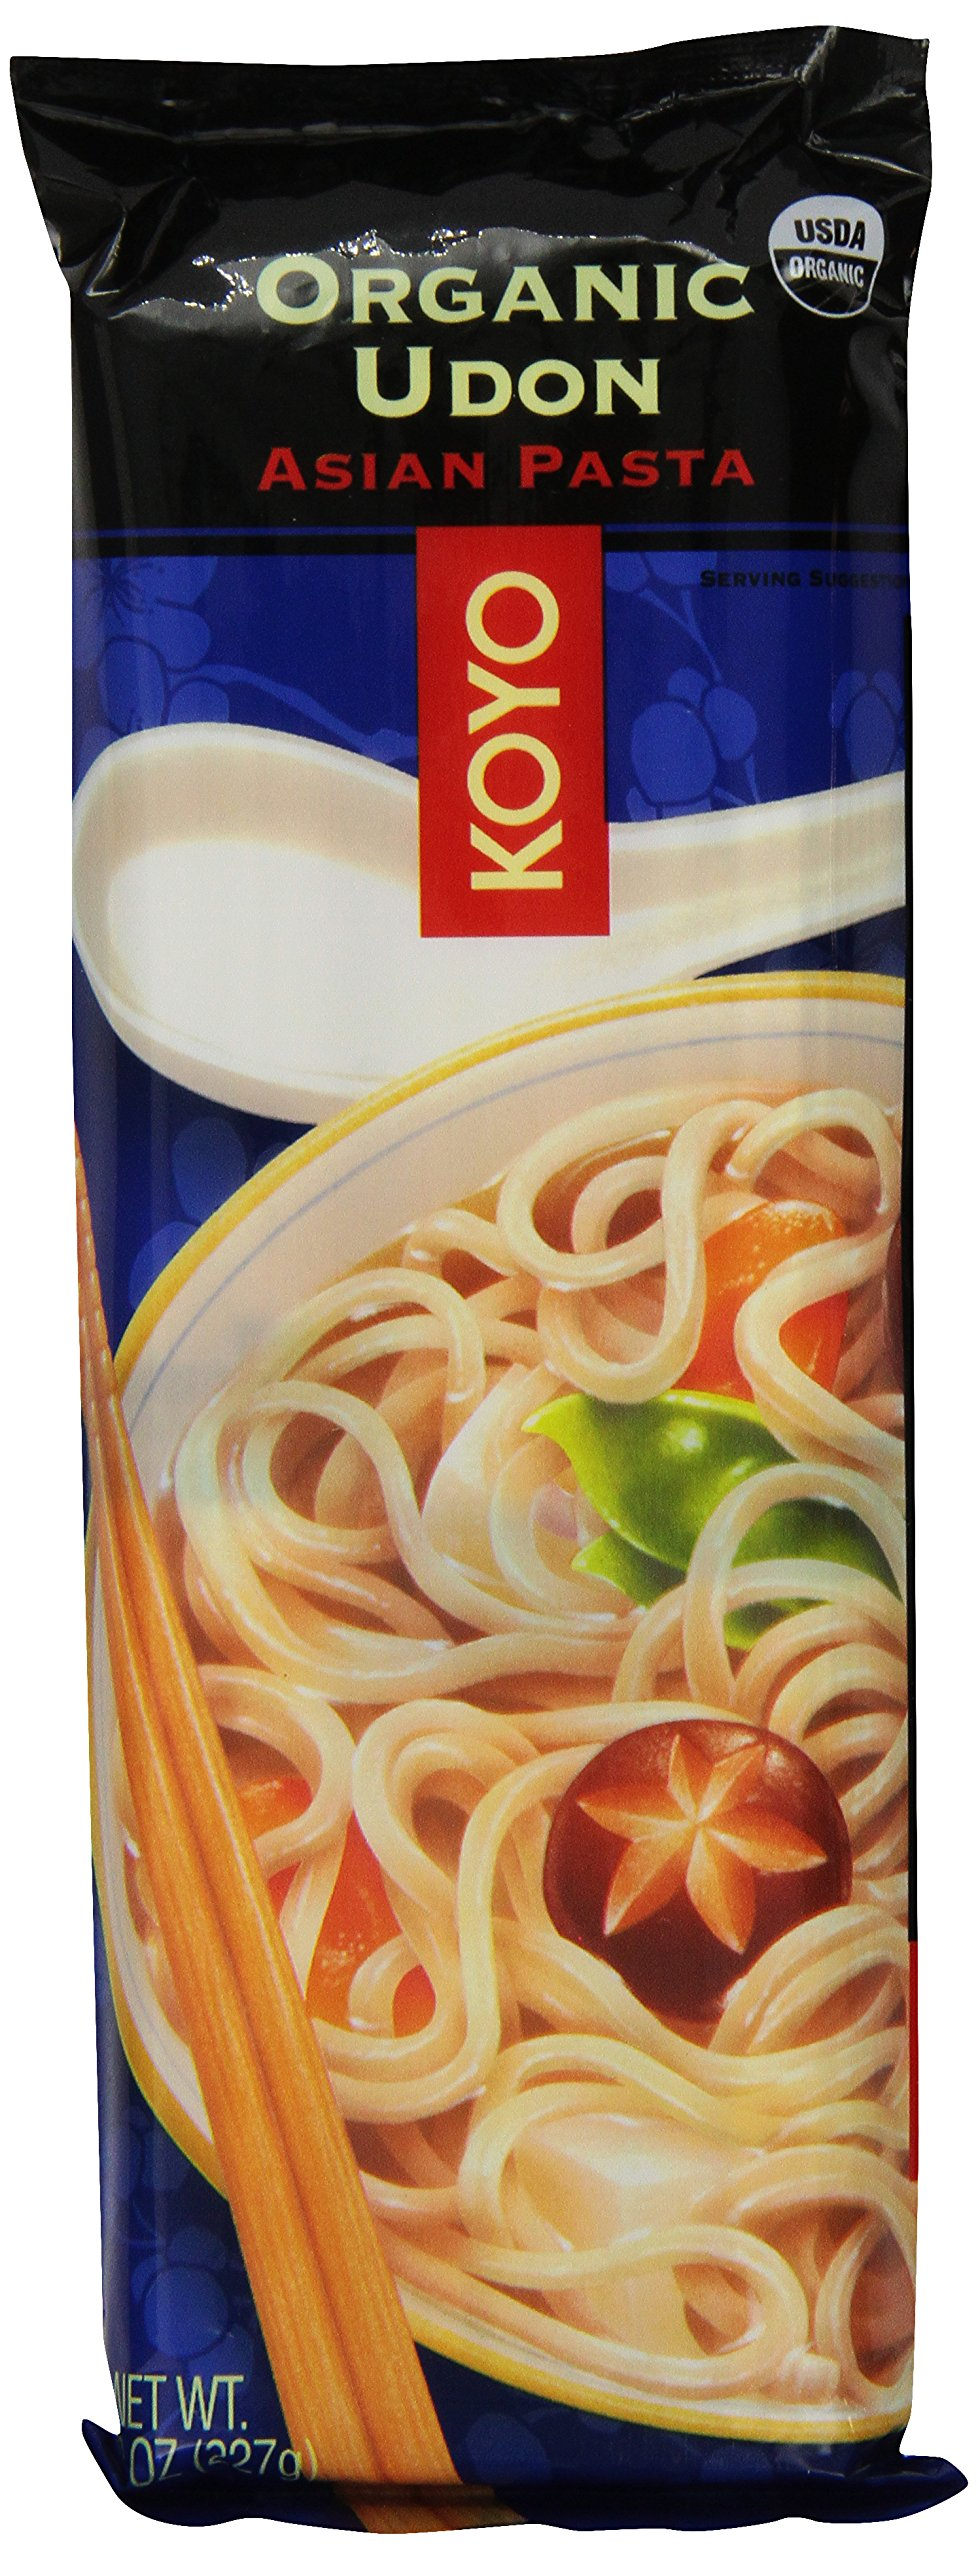 Koyo Noodles-udon, 8-Ounce Units (Pack of 12) by Koyo